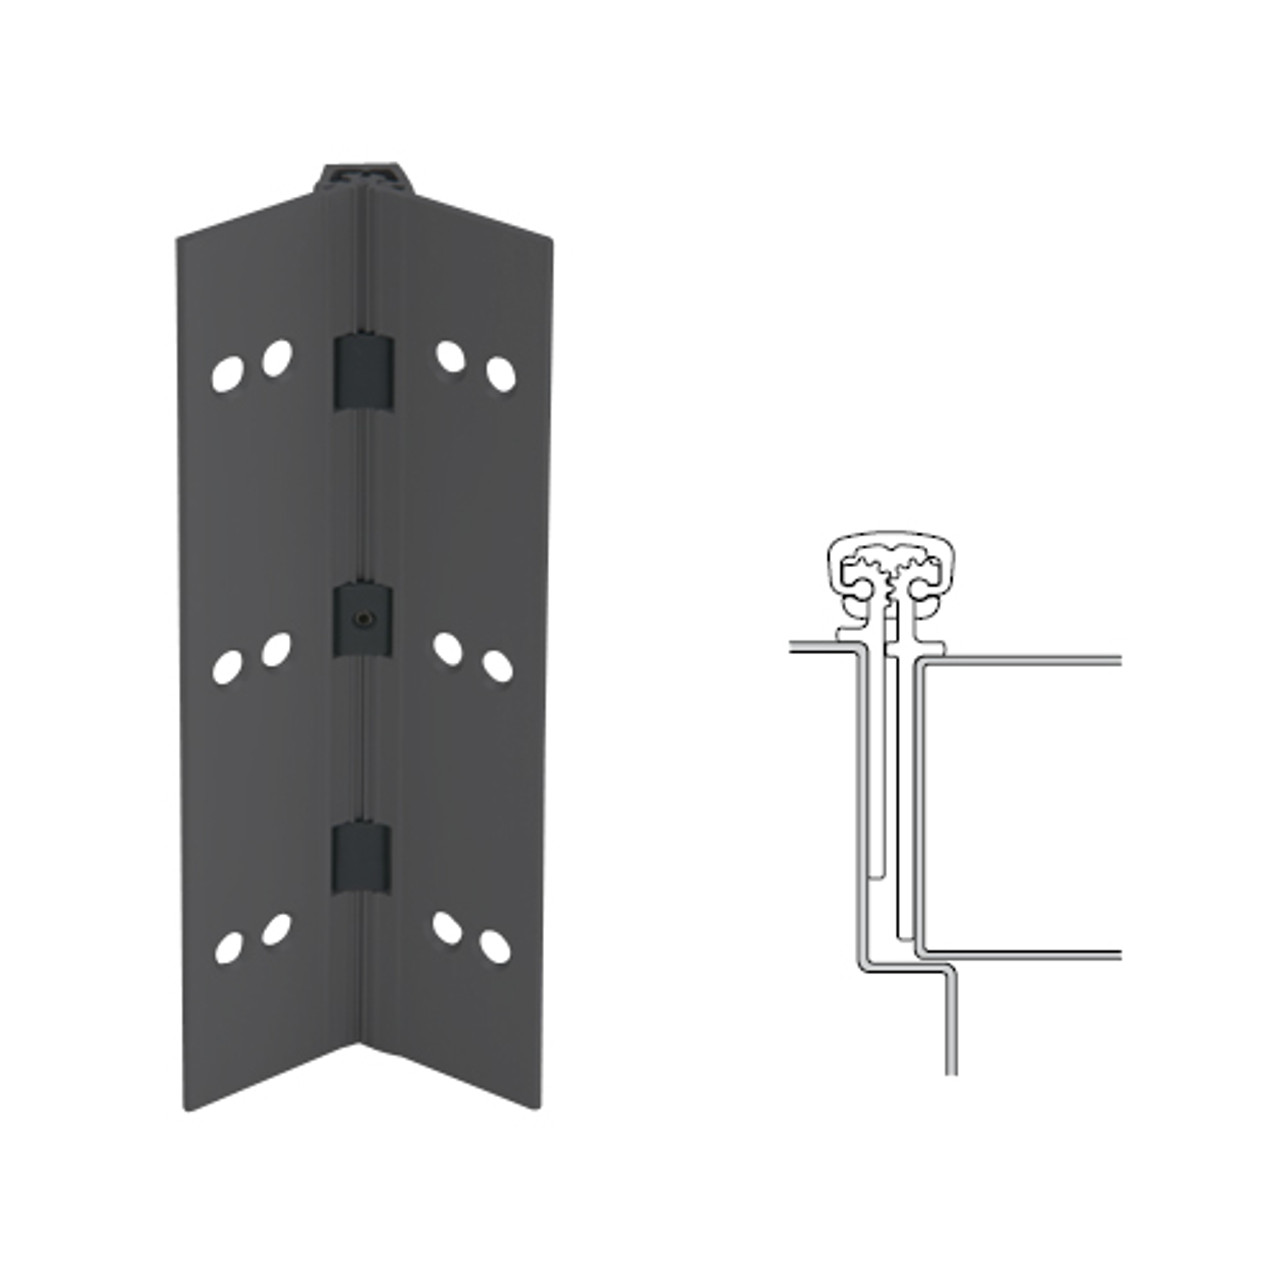 026XY-315AN-95-EPT IVES Full Mortise Continuous Geared Hinges with Electrical Power Transfer Prep in Anodized Black